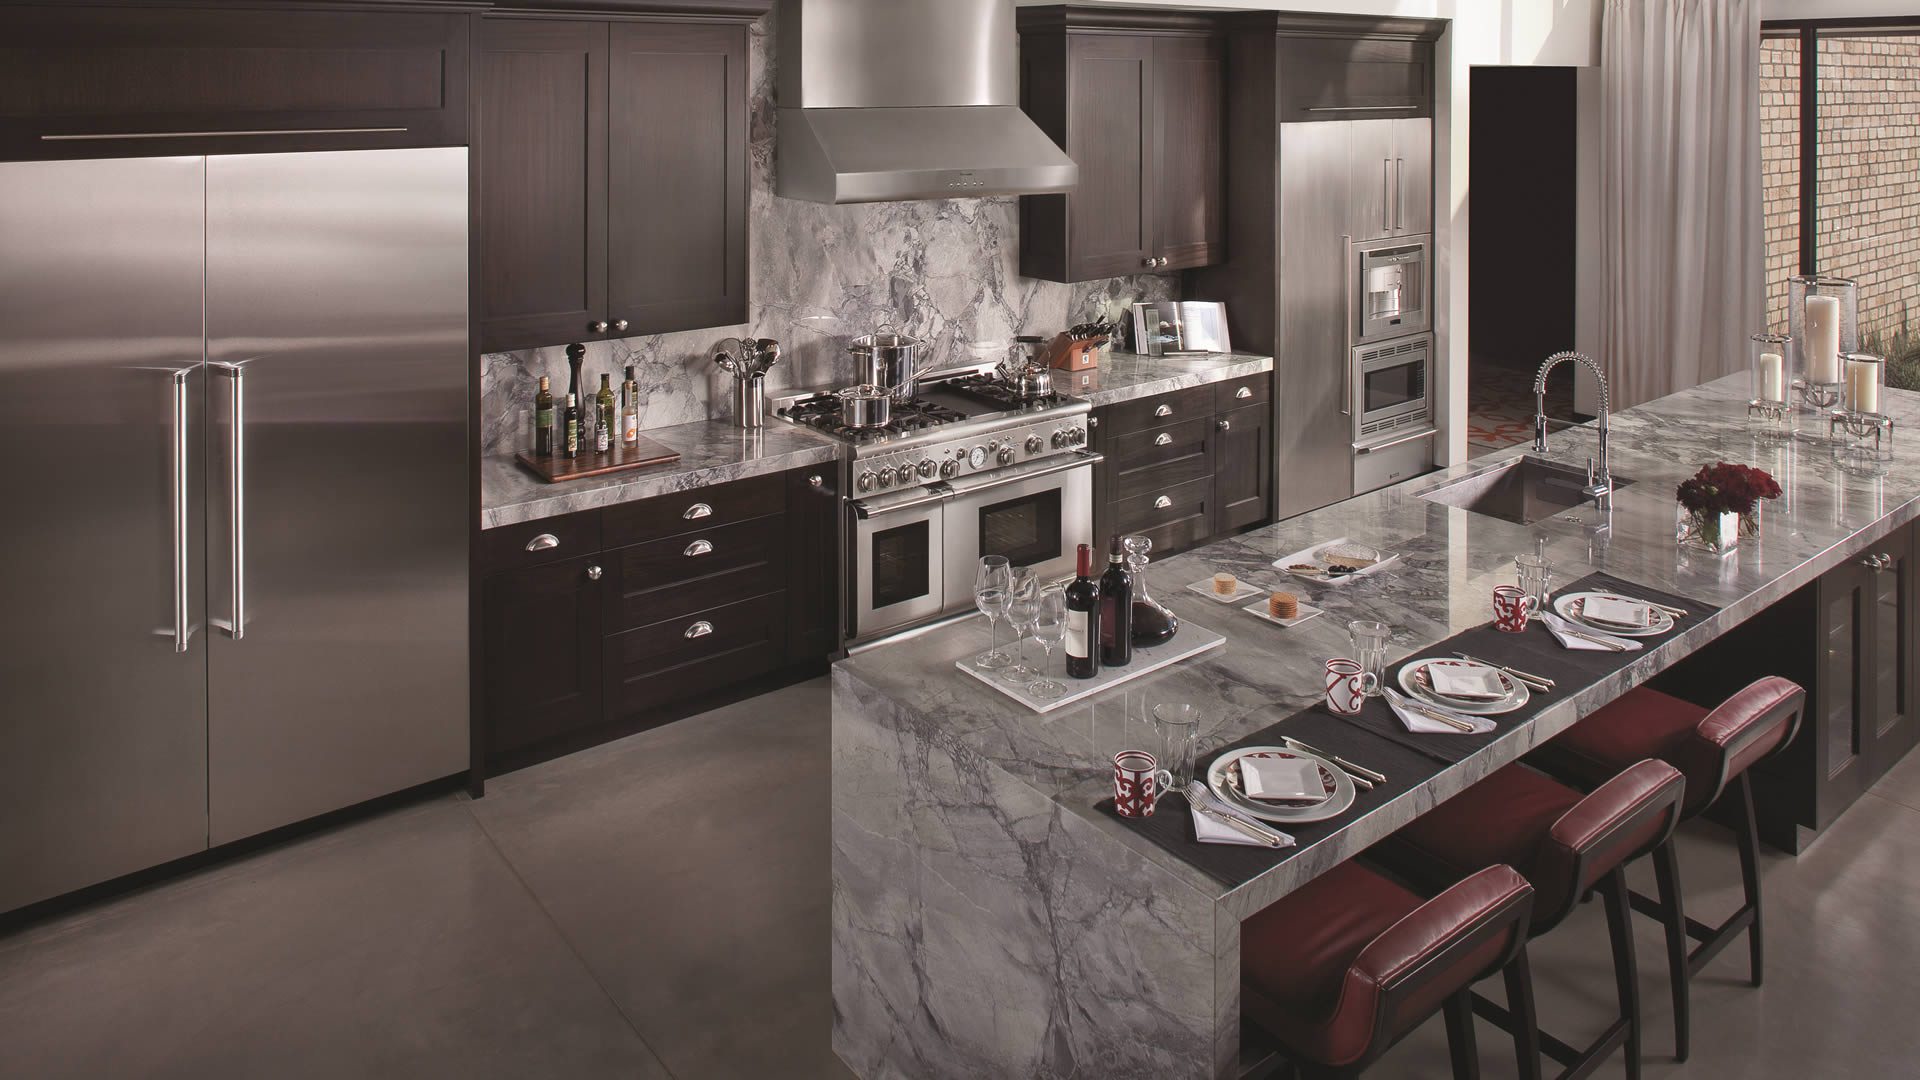 Thermador Fine Luxury Kitchen Appliances Nordic Kitchens And Baths Inc